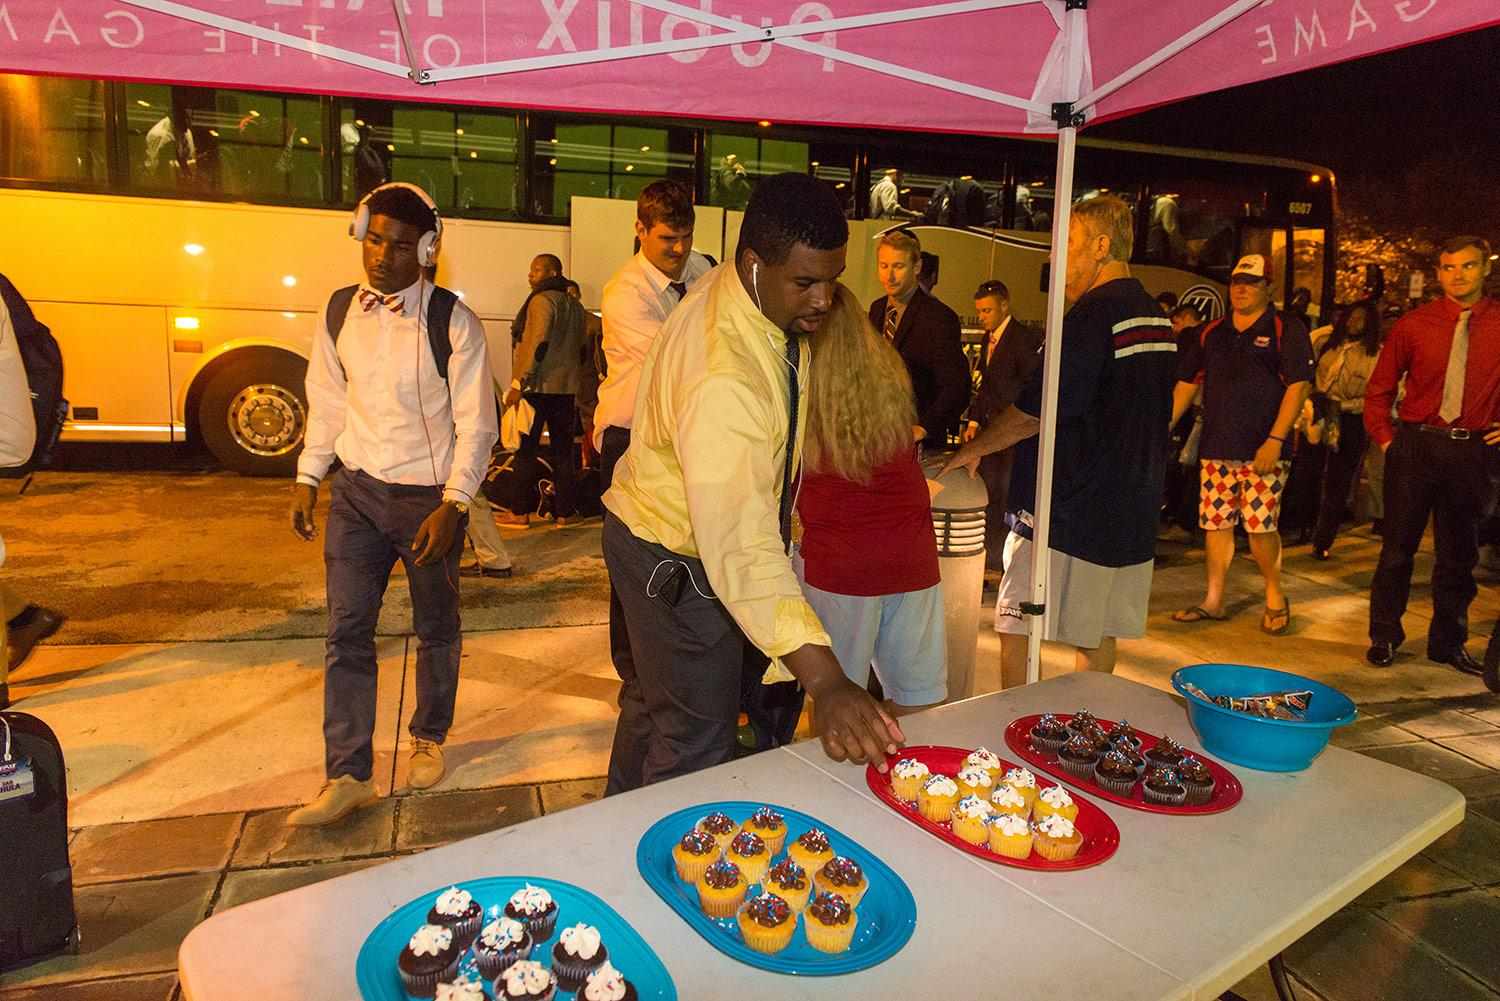 Quarterback Jaquez Johnson returning after a football game, welcomed warmly with cupcakes. Photo by Max Jackson